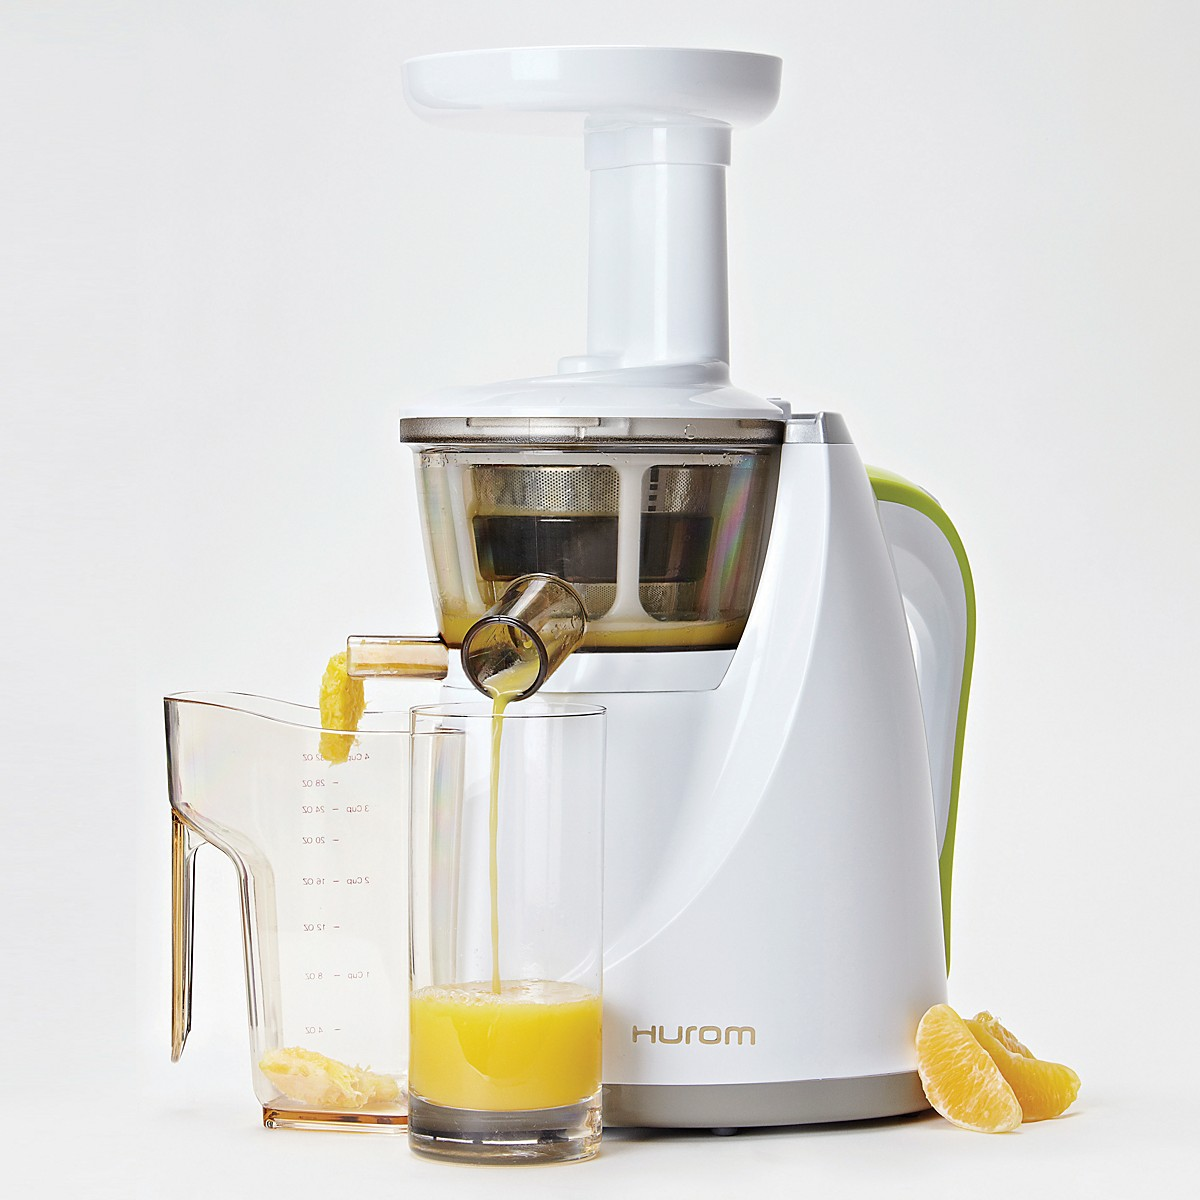 Hurom Slow Juicer Kuvings : The Wish List 2014 Our favourite kitchen appliances for chefs and avid home cooks